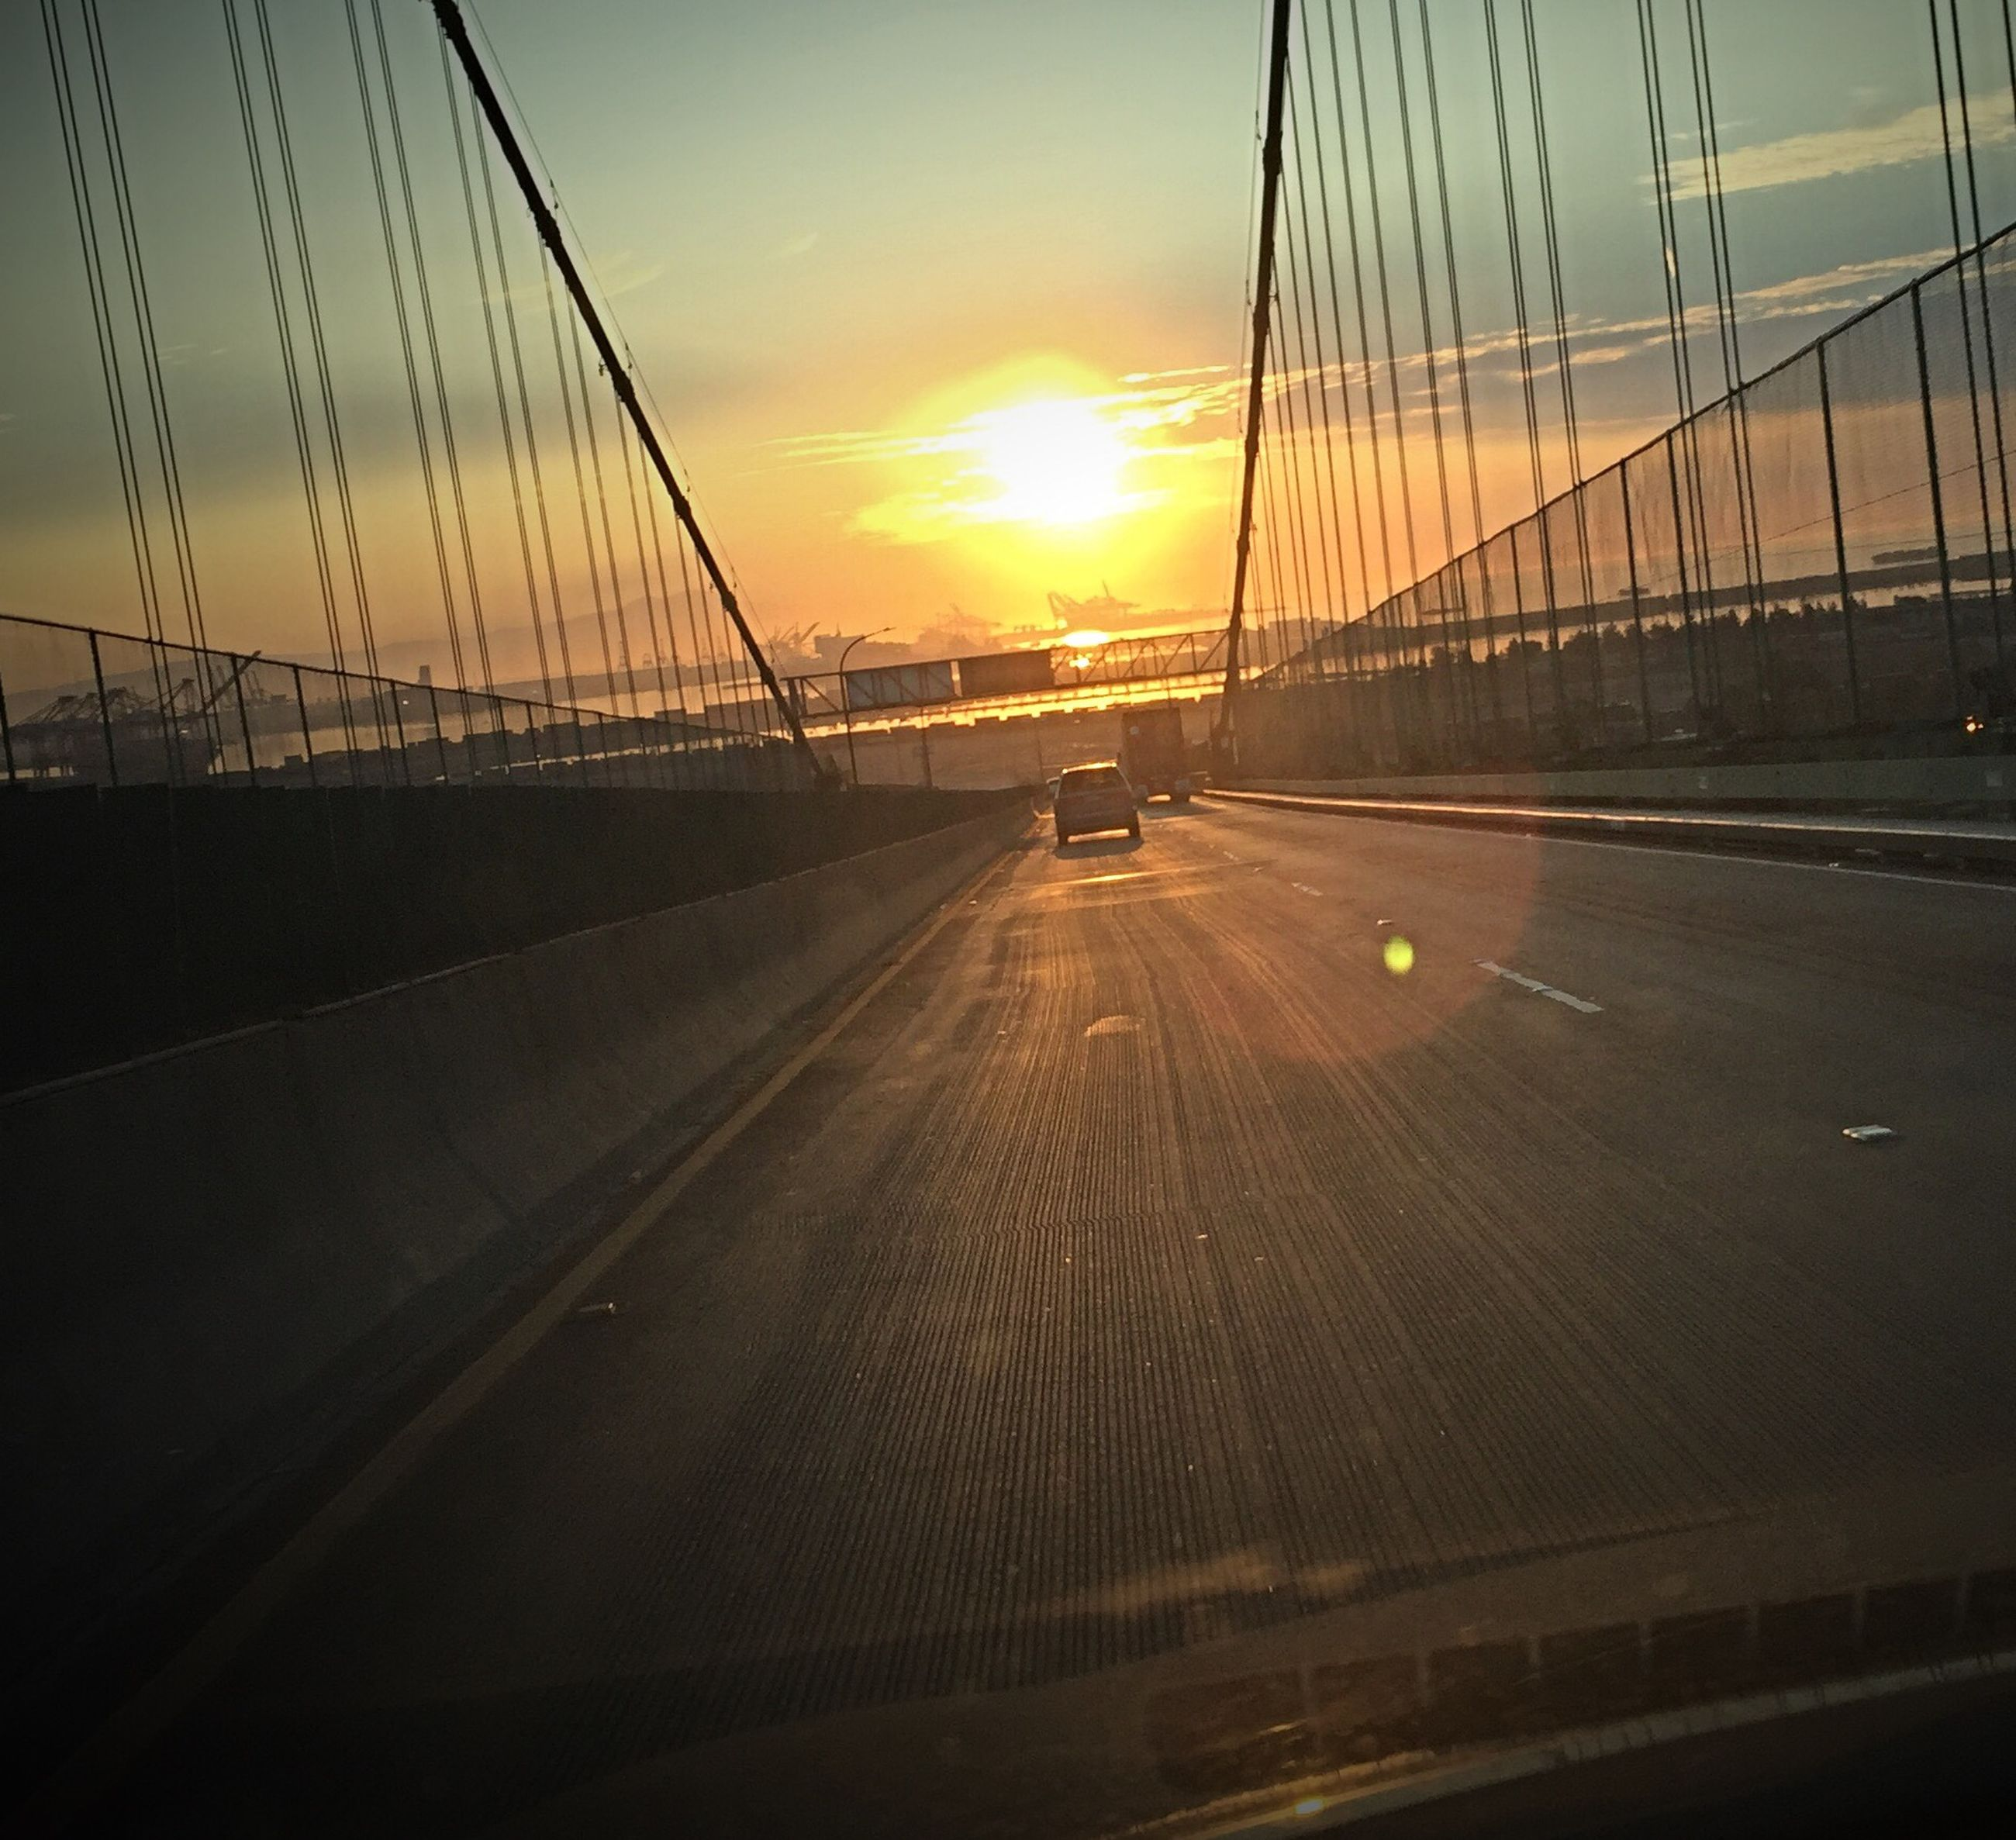 sunset, sun, orange color, transportation, connection, sky, silhouette, the way forward, sunlight, diminishing perspective, road, bridge - man made structure, scenics, built structure, sea, outdoors, beauty in nature, no people, nature, vanishing point